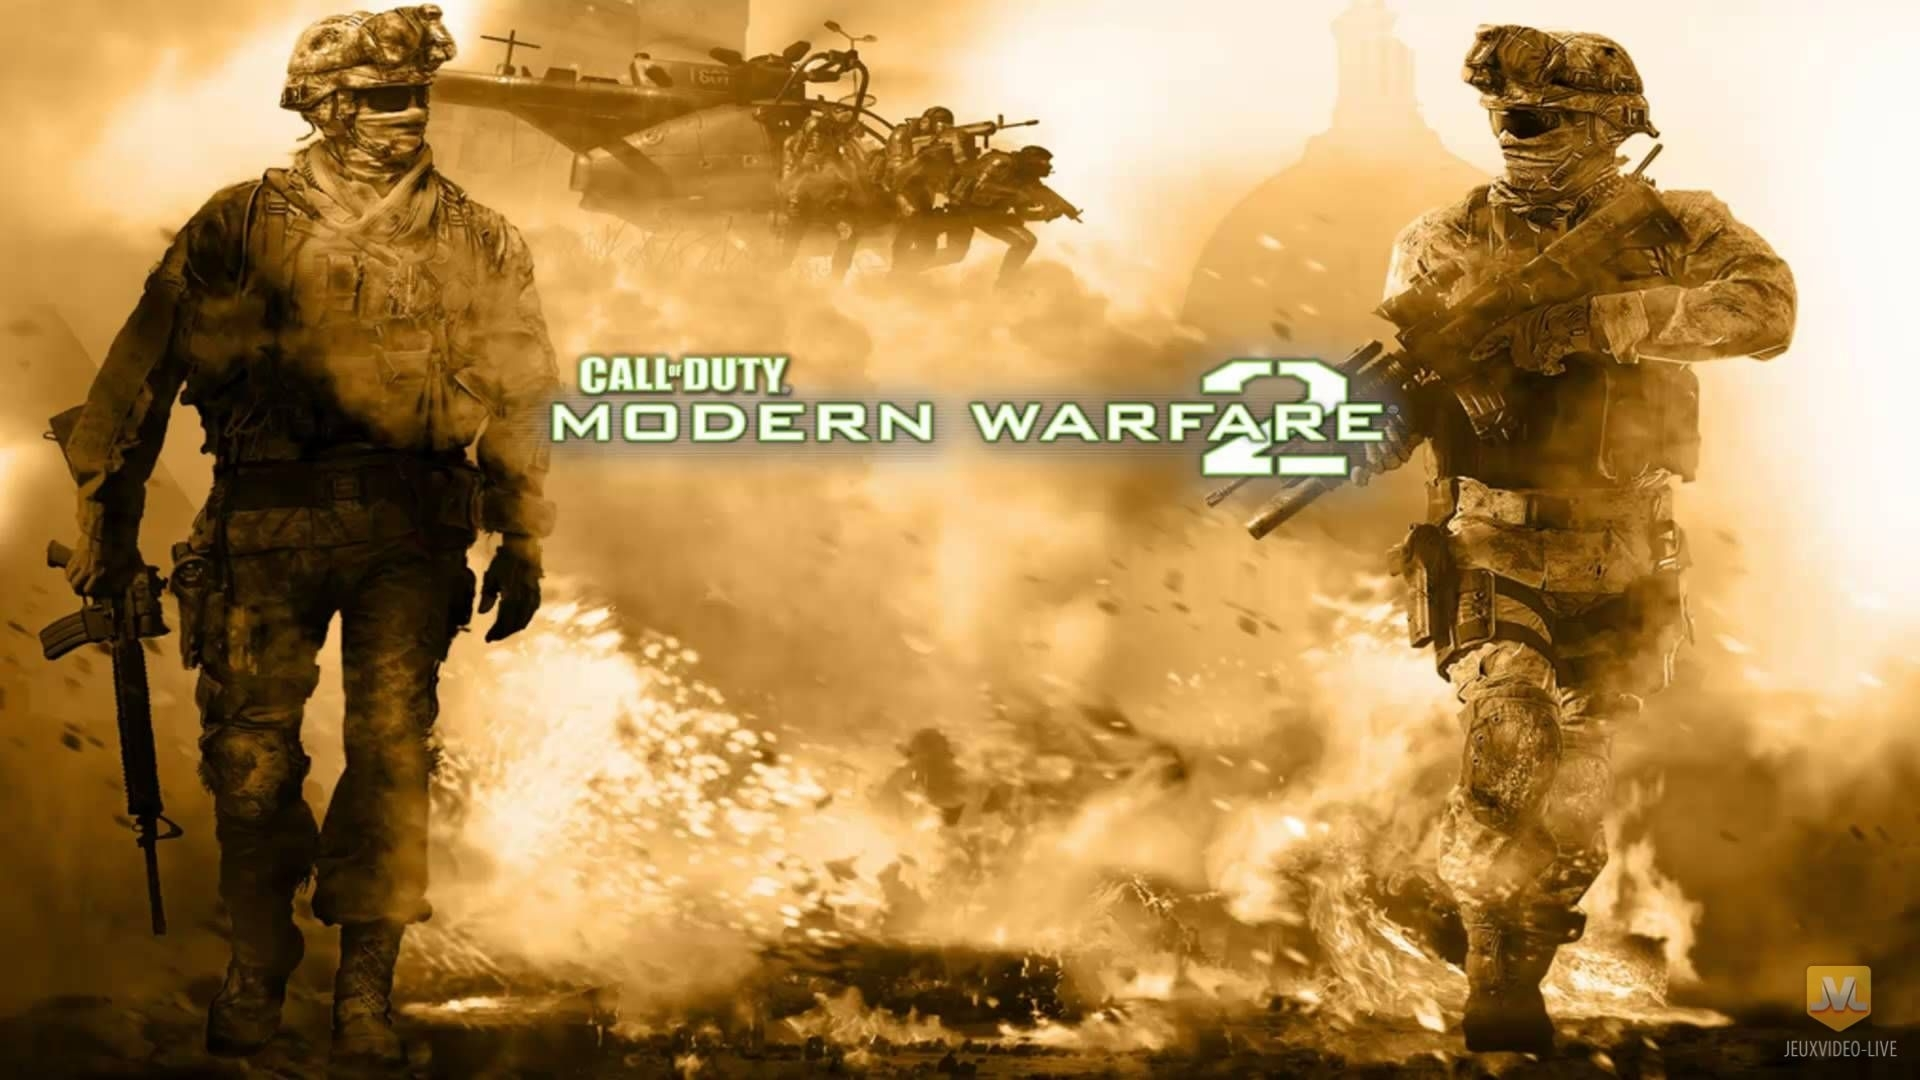 Title Call Of Duty Modern Warfare 2 Remastered Repere Sur Ps4 Et Xbox Dimension 1920 X 1080 File Type JPG JPEG